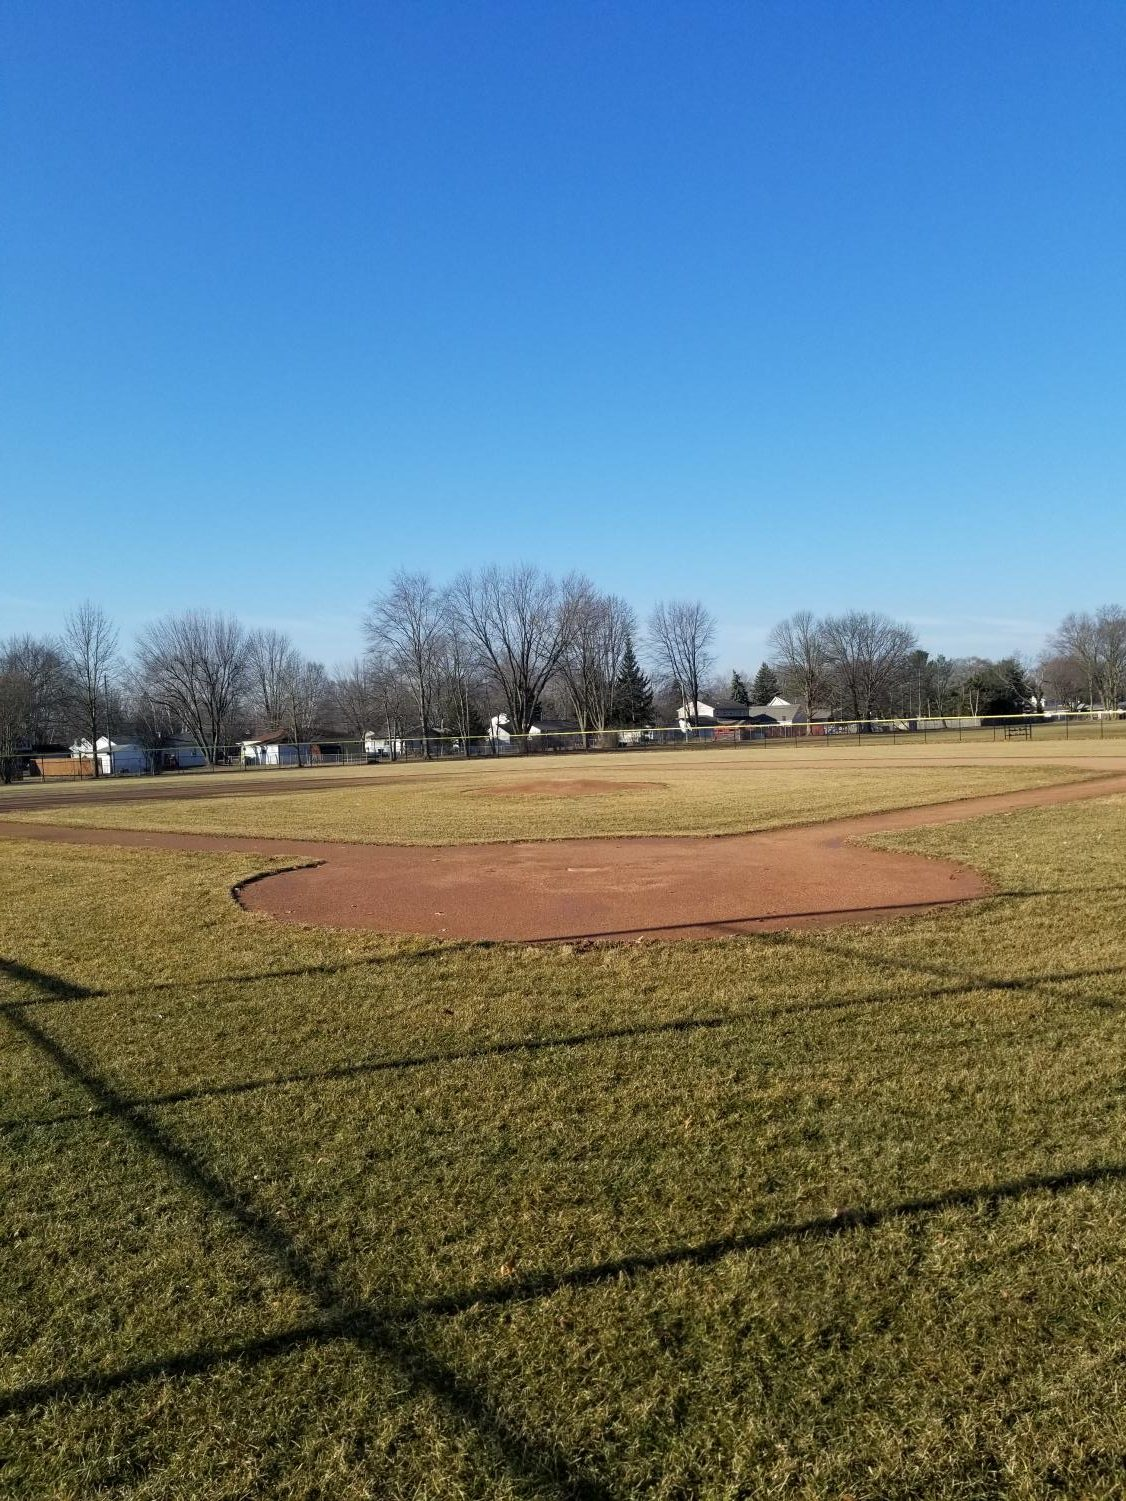 The varsity LCN baseball diamond sits empty as the MHSAA spring sports season appears to be coming to an abrupt end.